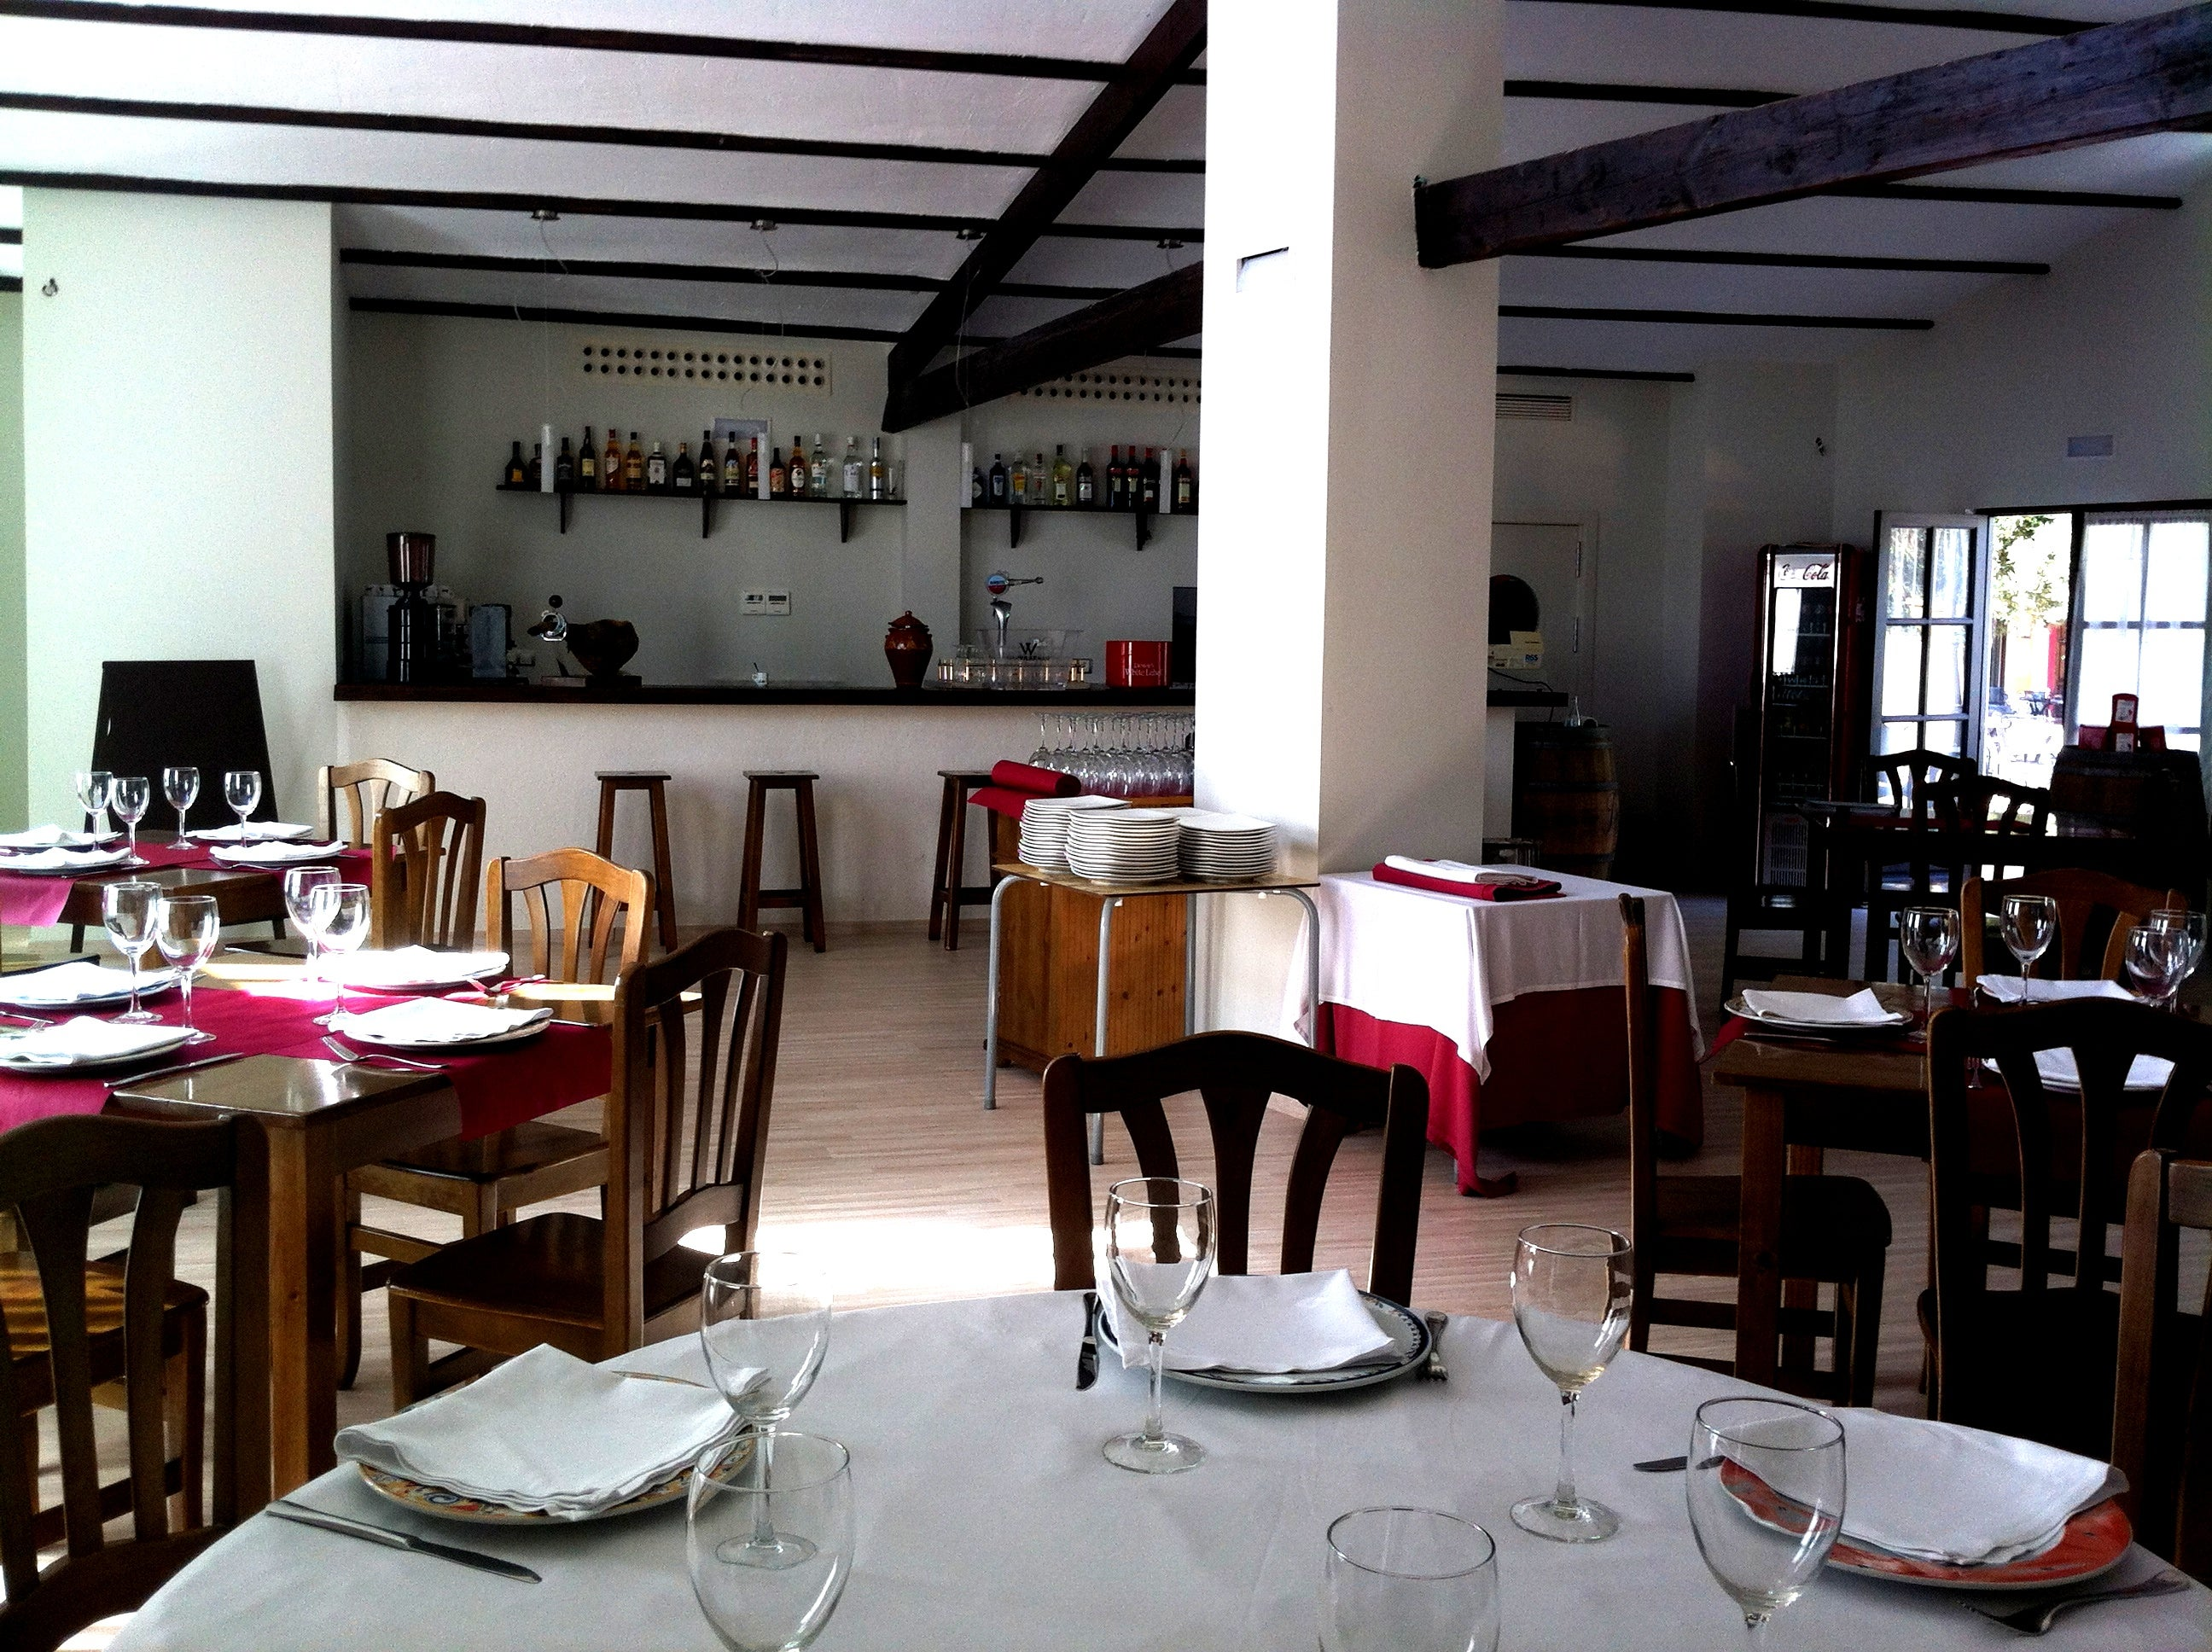 Restaurante La Taberna de Don Jose